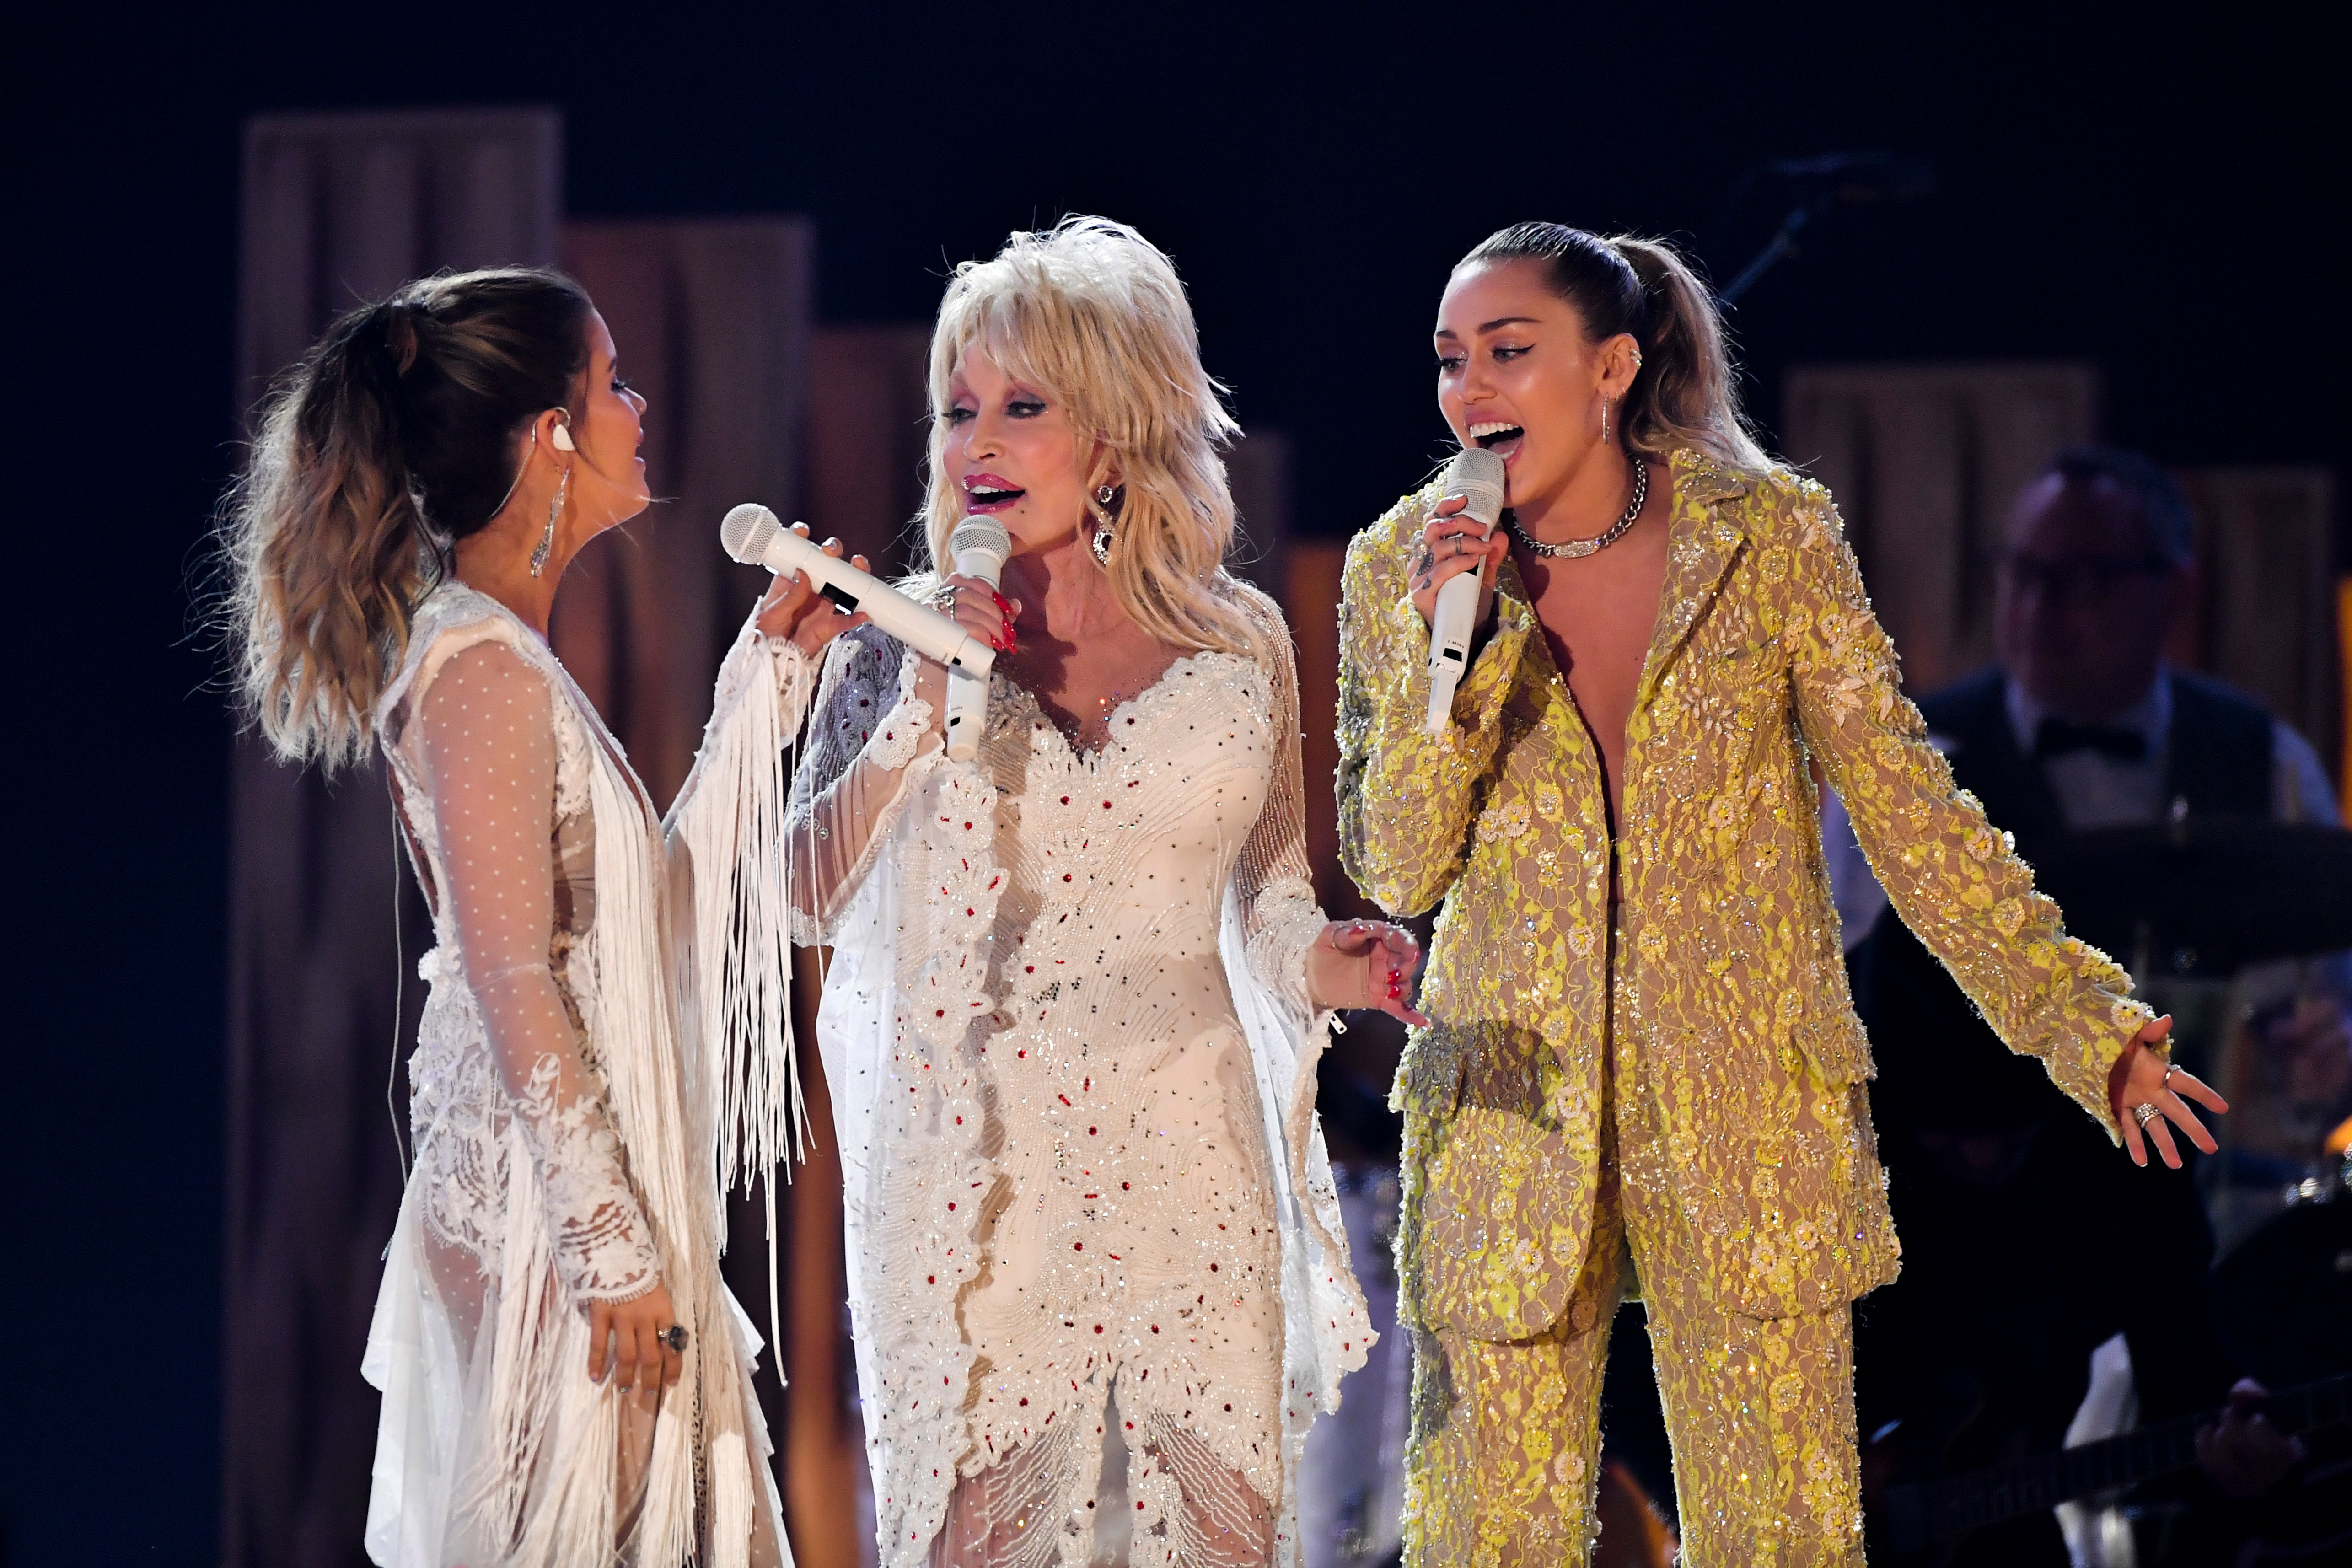 Grammys 2019: Dolly Parton Covers Neil Young With Miley Cyrus